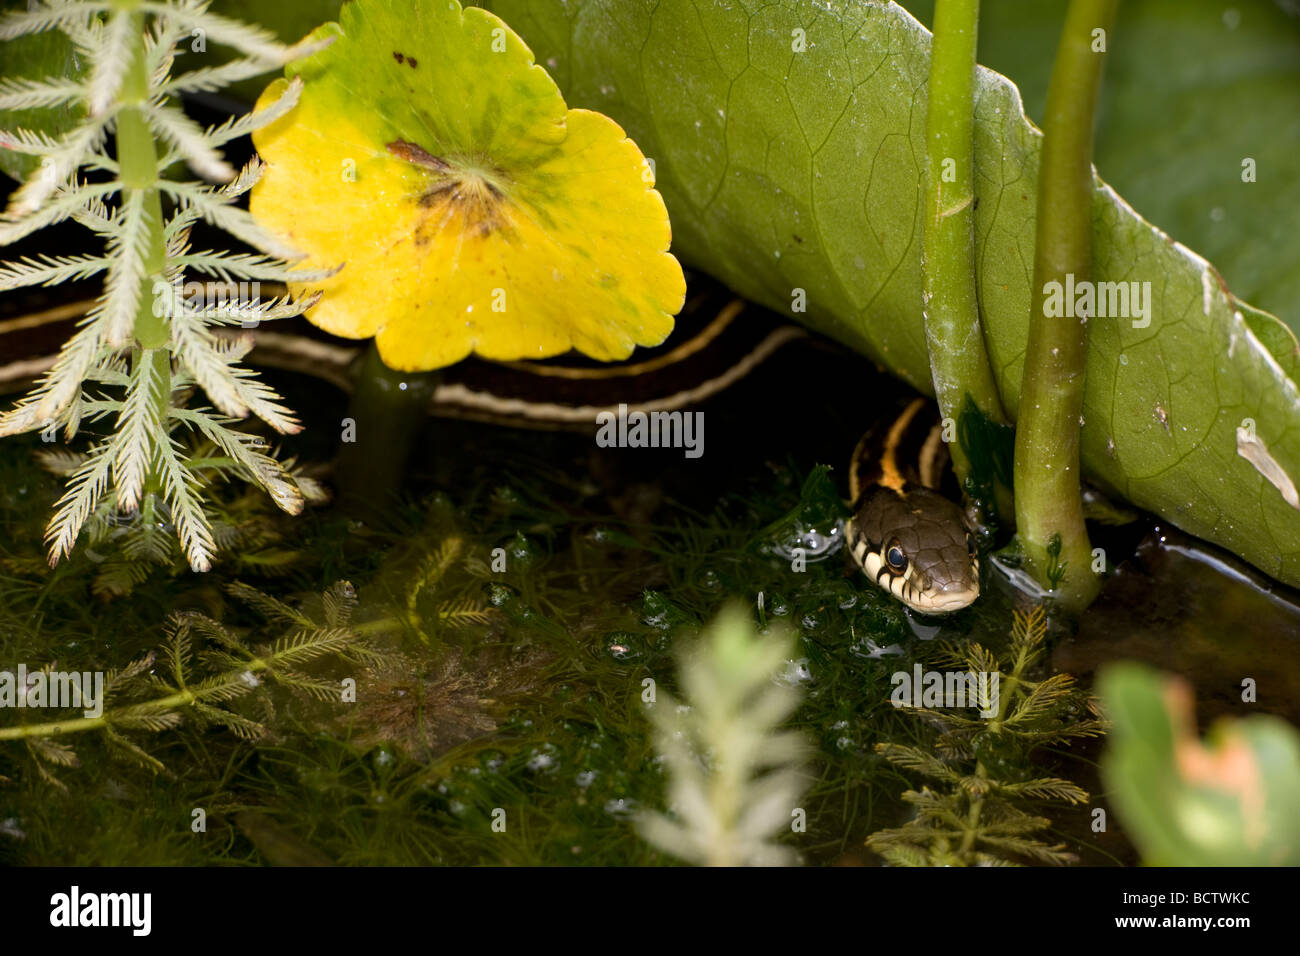 Black-necked Garter Snake (Thamnophis cyrtopsis) Az - USA - Semi-aquatic - In pond with lily pads Stock Photo